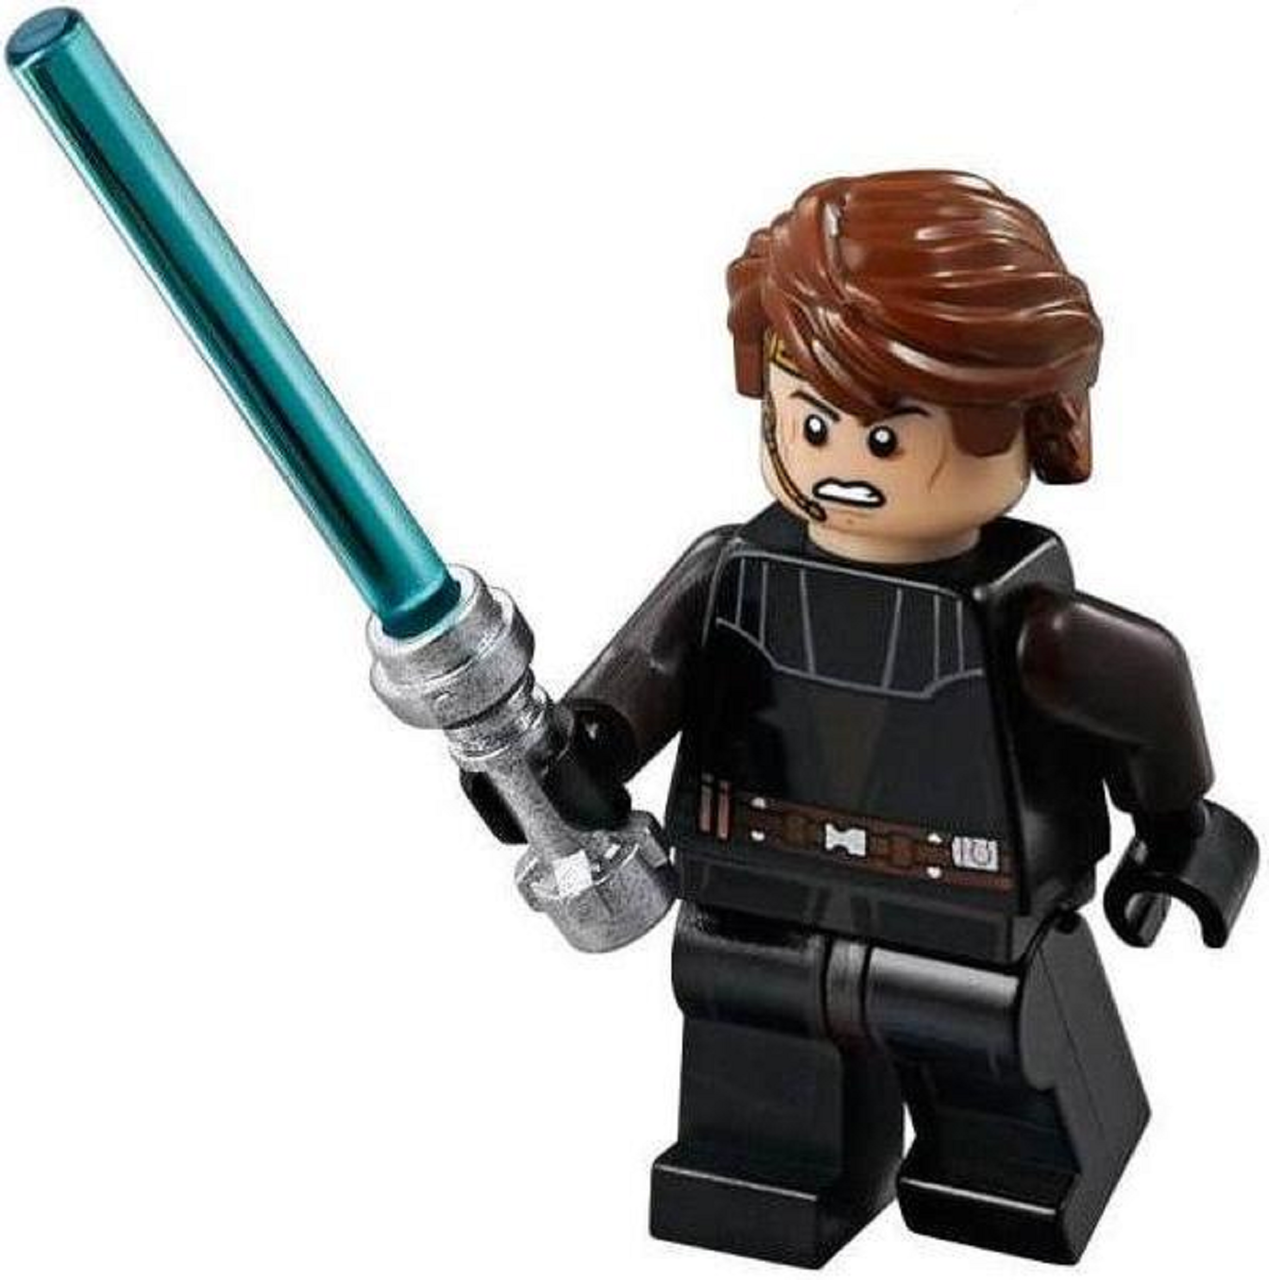 LEGO® Star Wars™ Luke Skywalker minifig Hoth